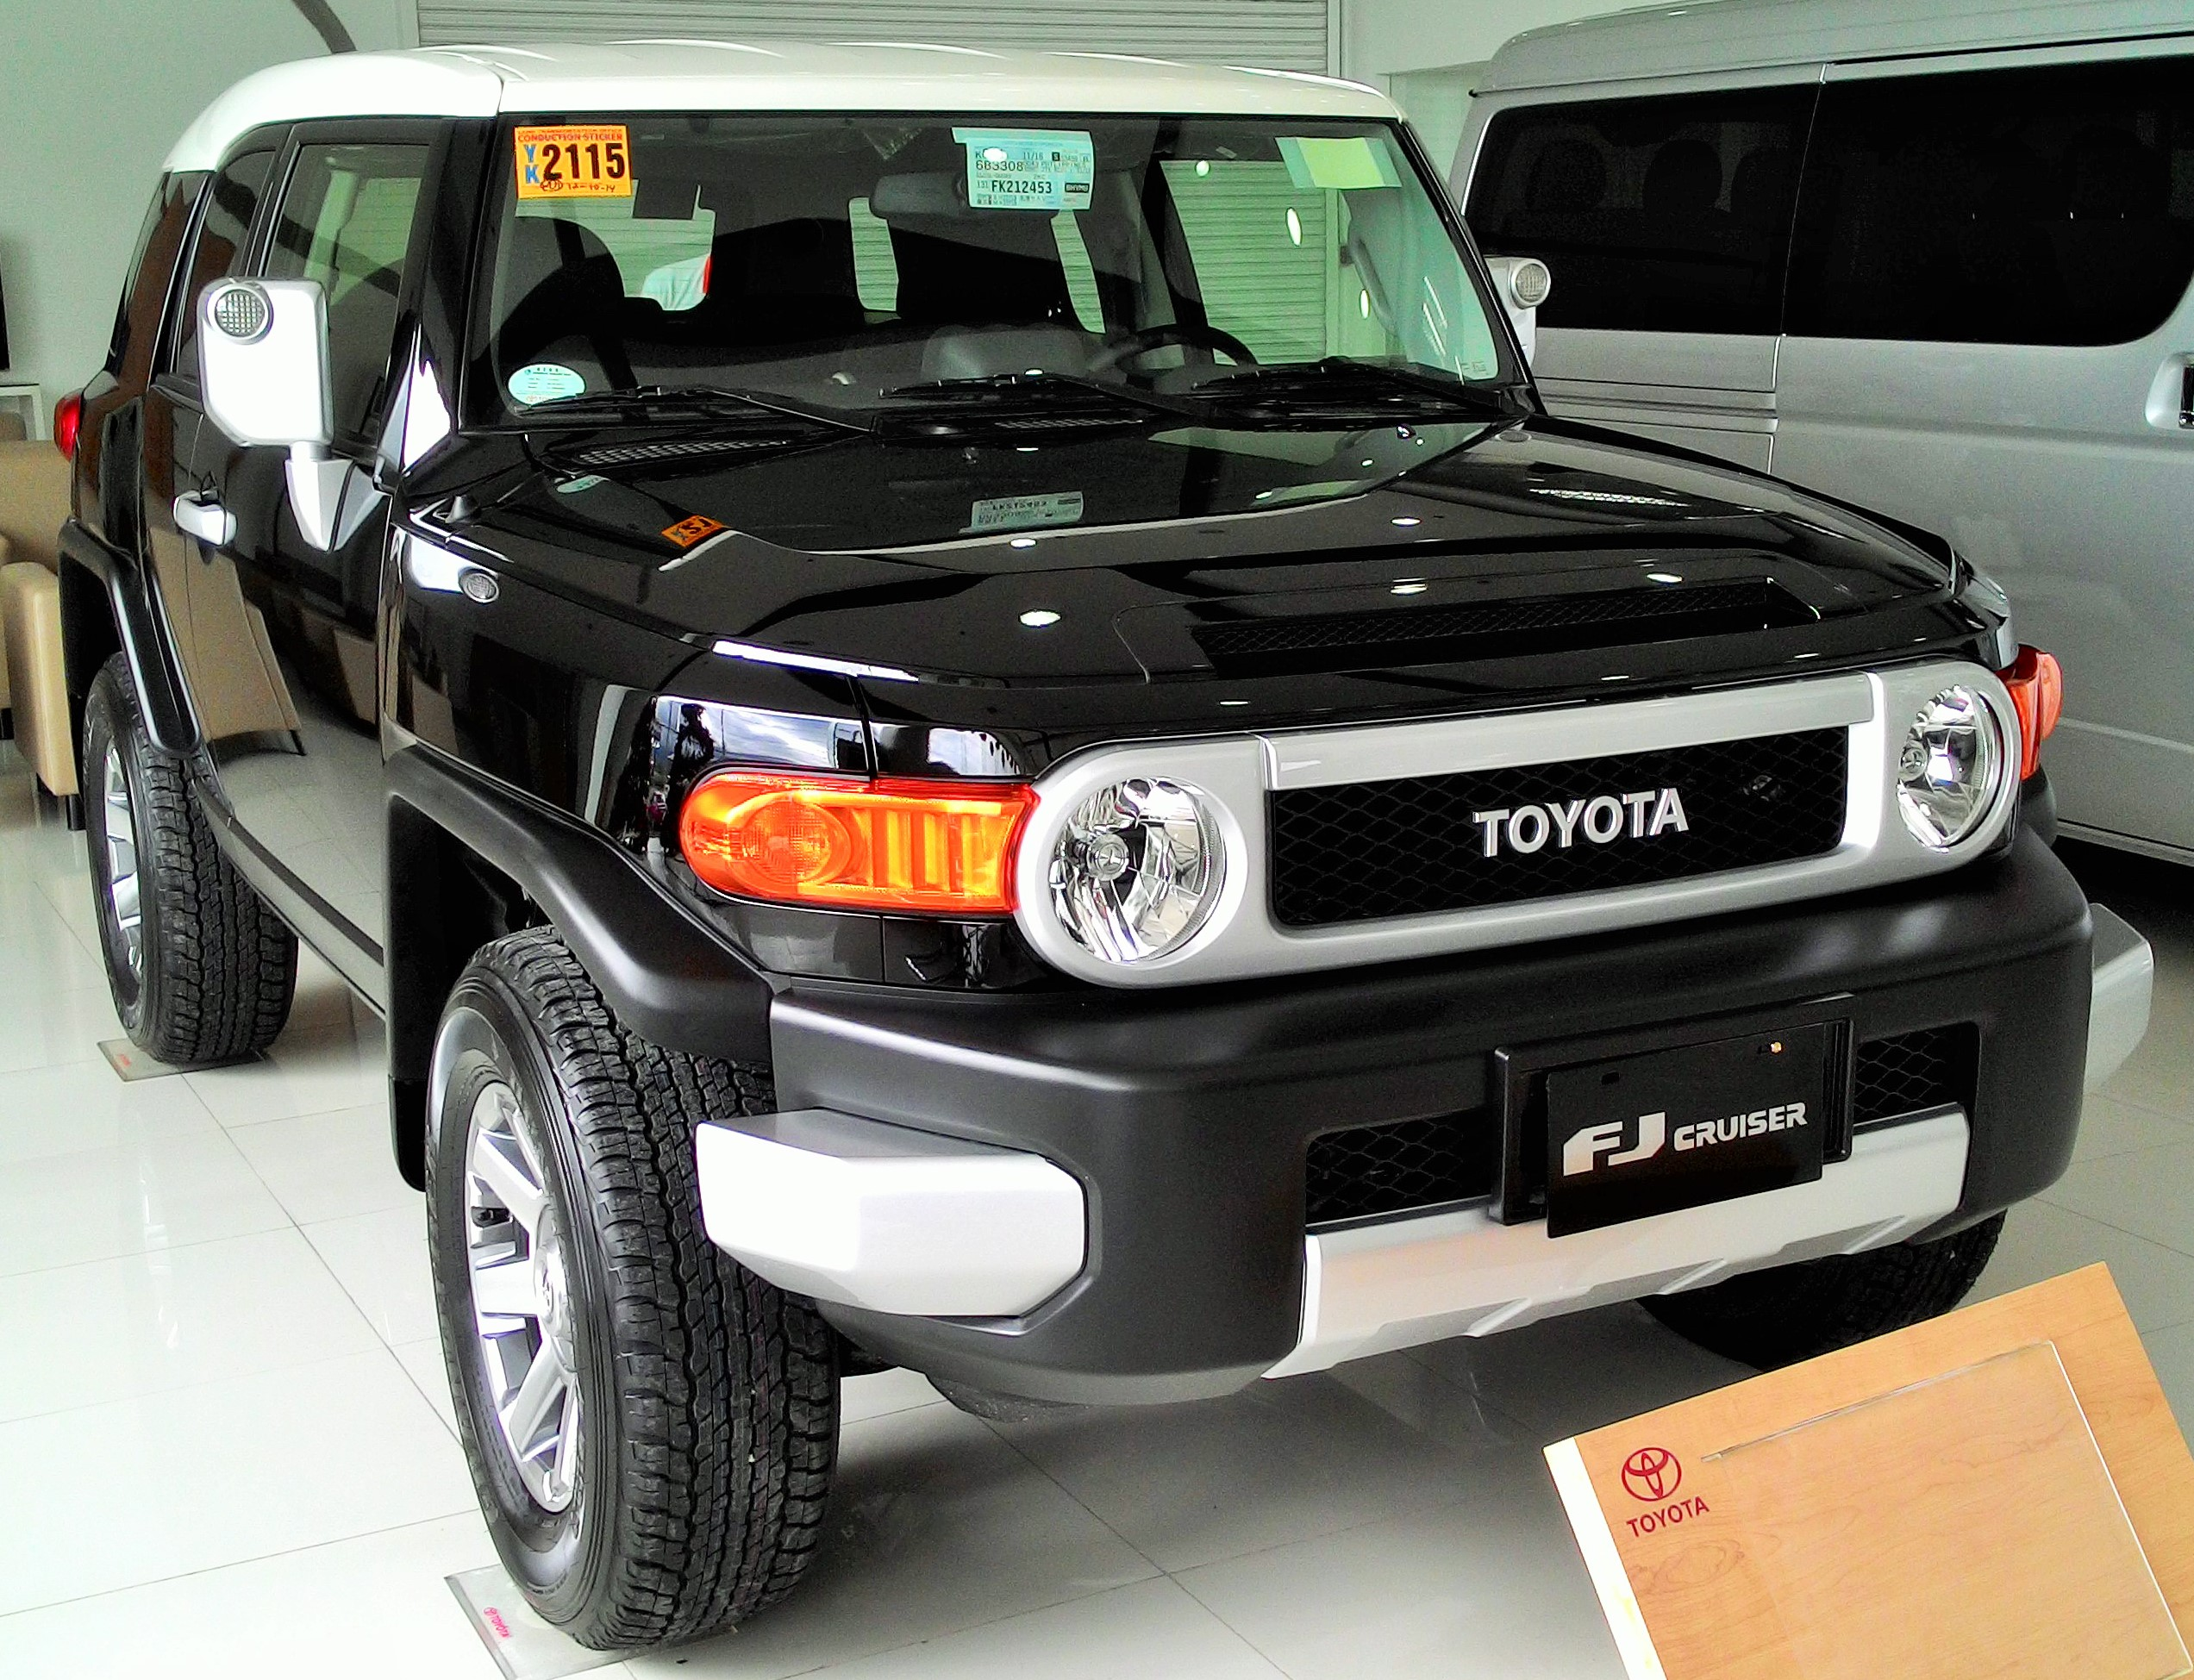 brand new toyota fj cruiser for only 360k all-in down payment